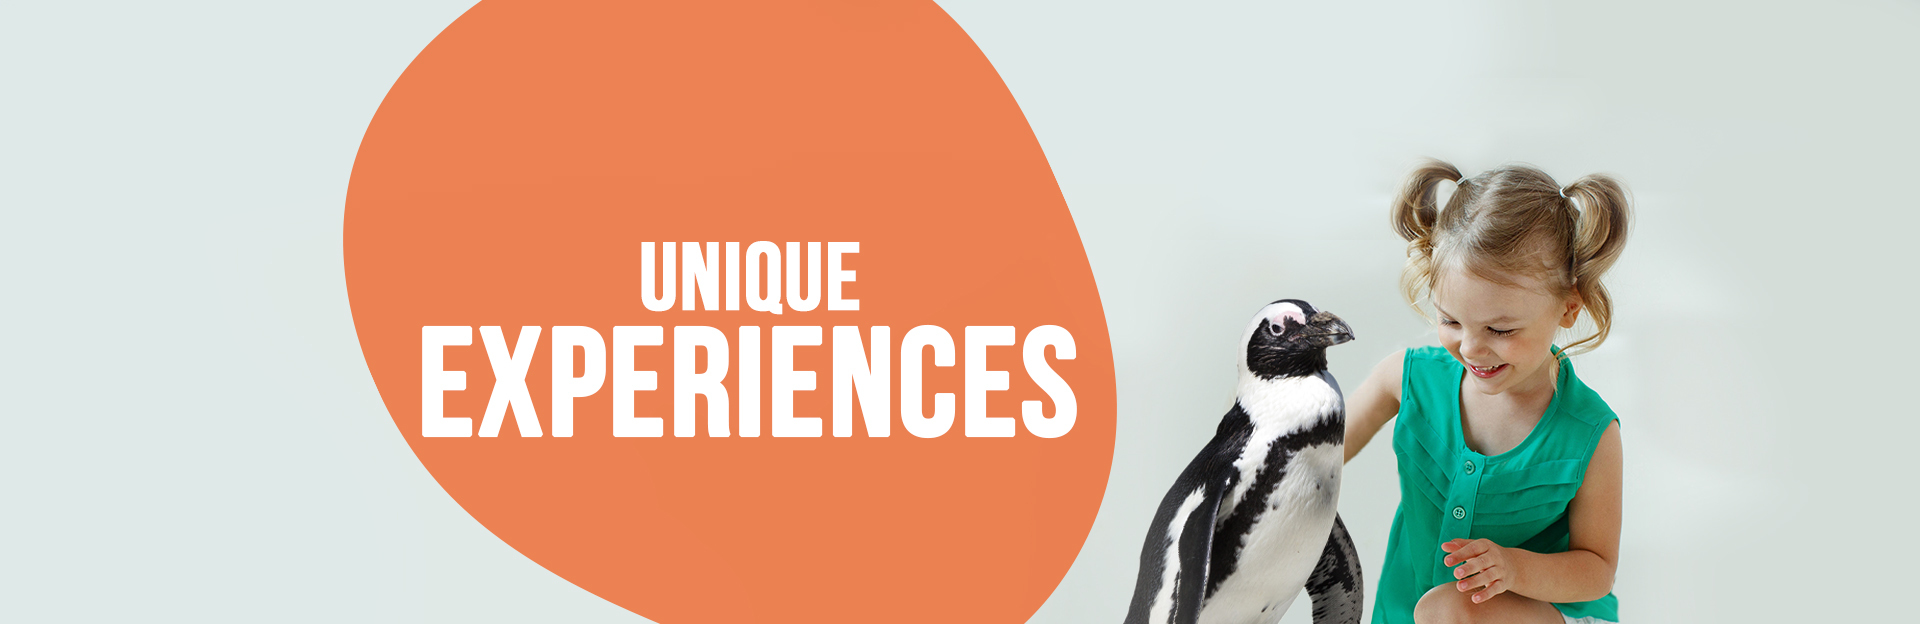 Header image for Unique Experiences page